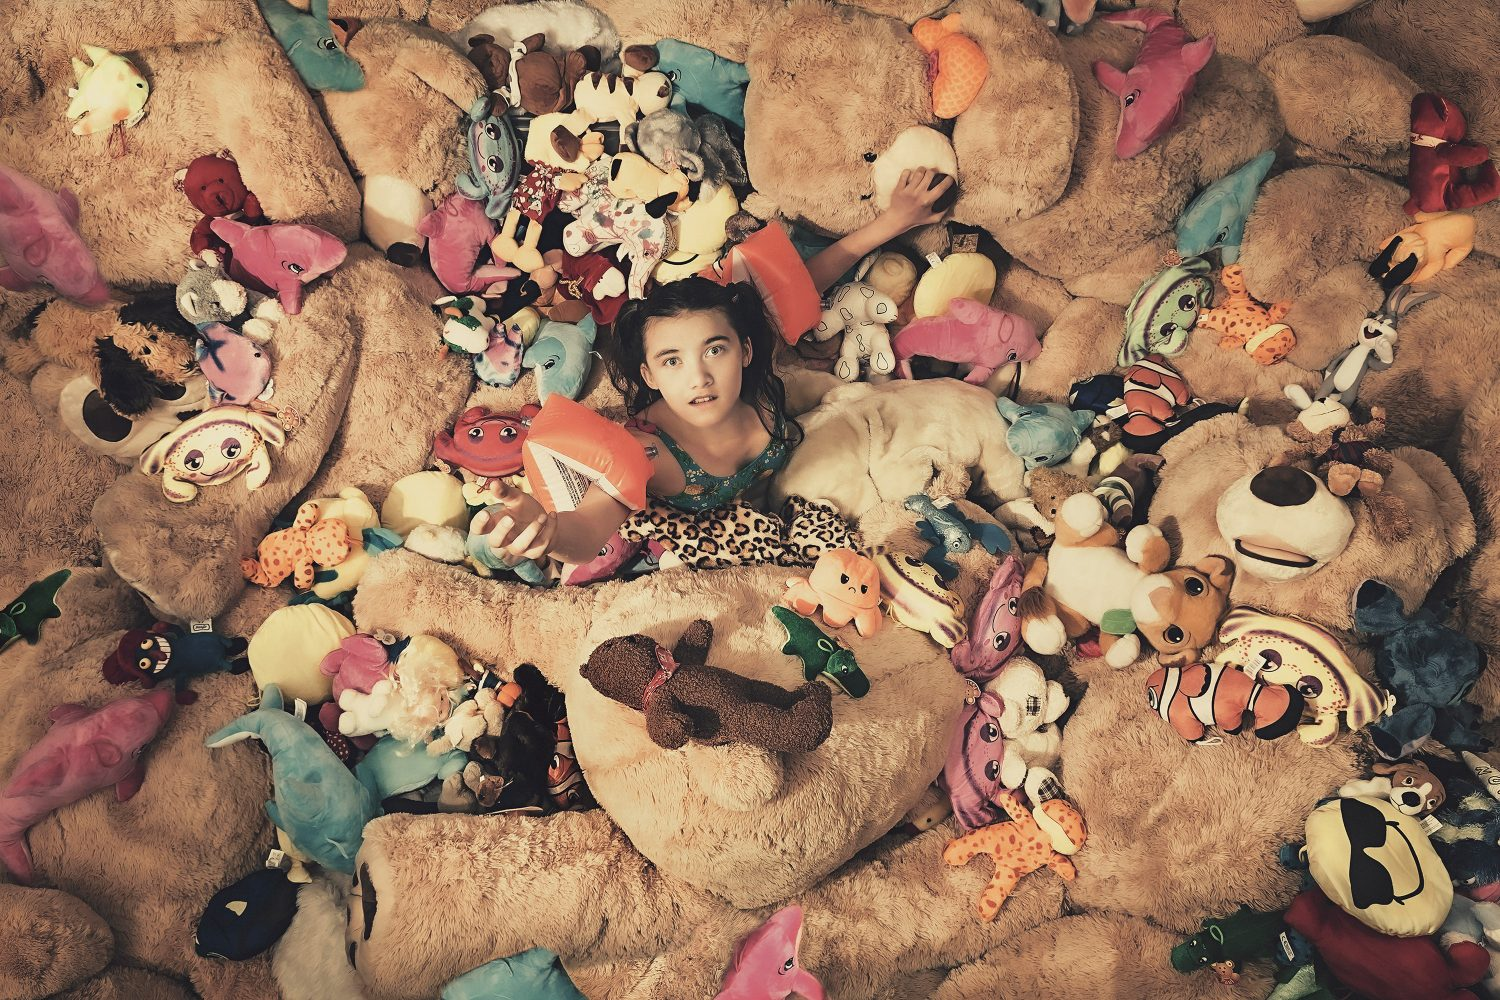 The drowning of consumption, teddy bear sauce - Hinders